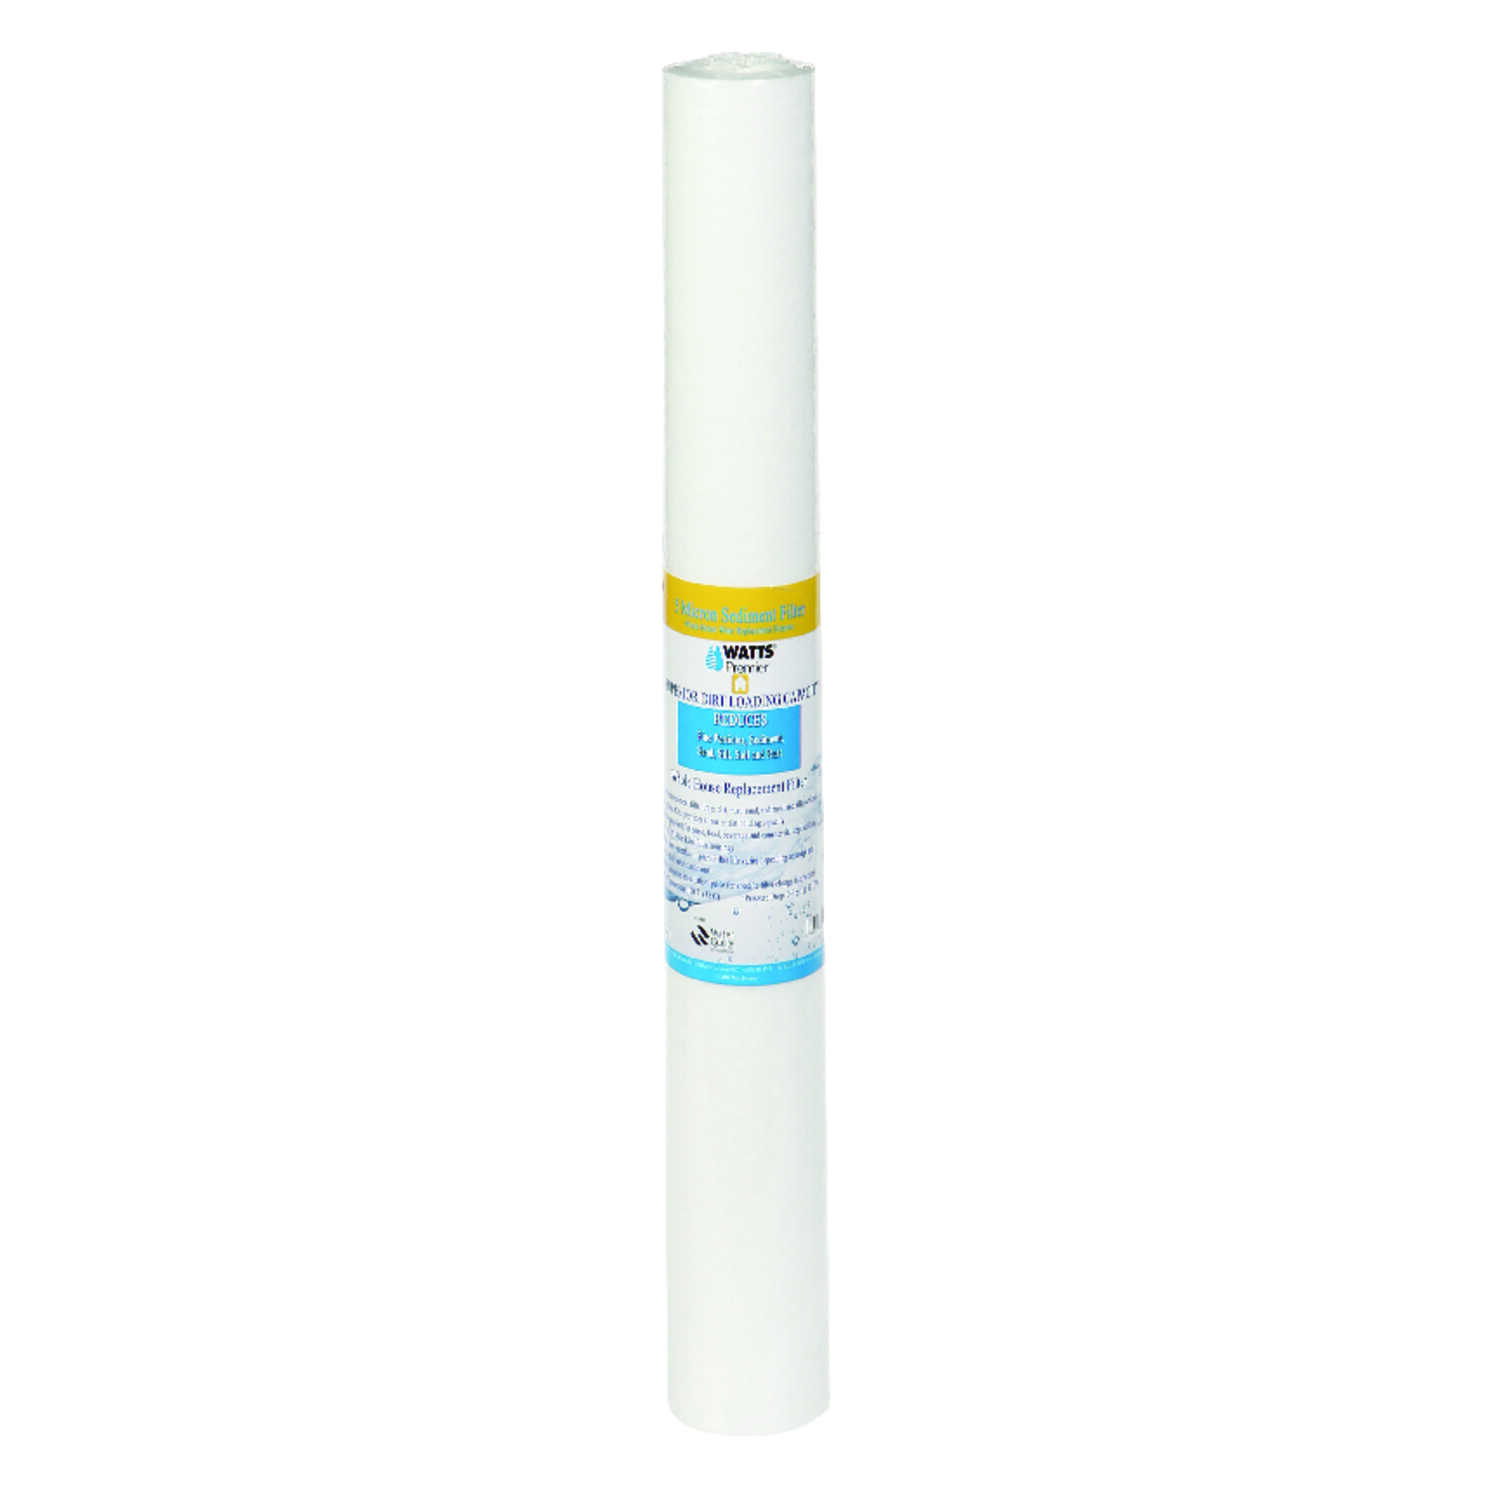 Watts  Premier  Replacement Water Filter  For Whole House 1350 gal.